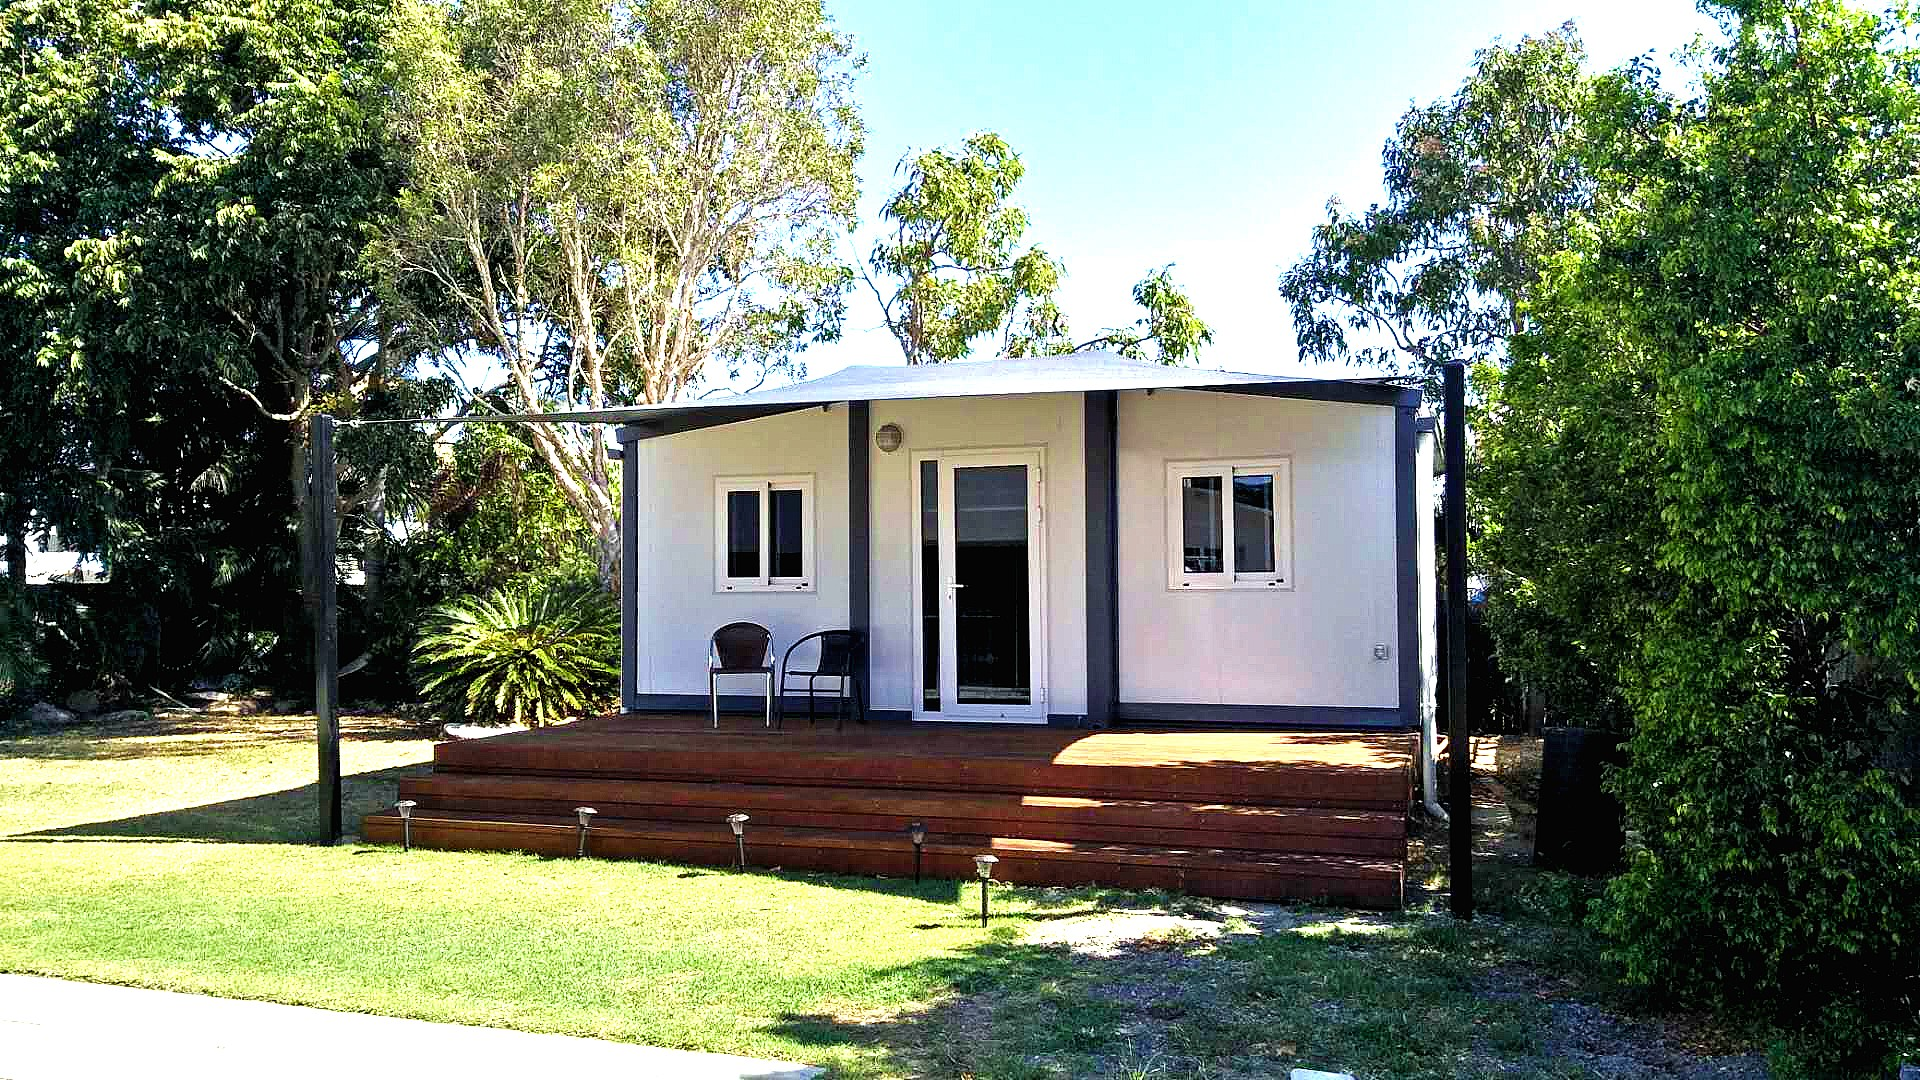 small / tiny home installed into backyard bathed in morning sunshine and cool shade